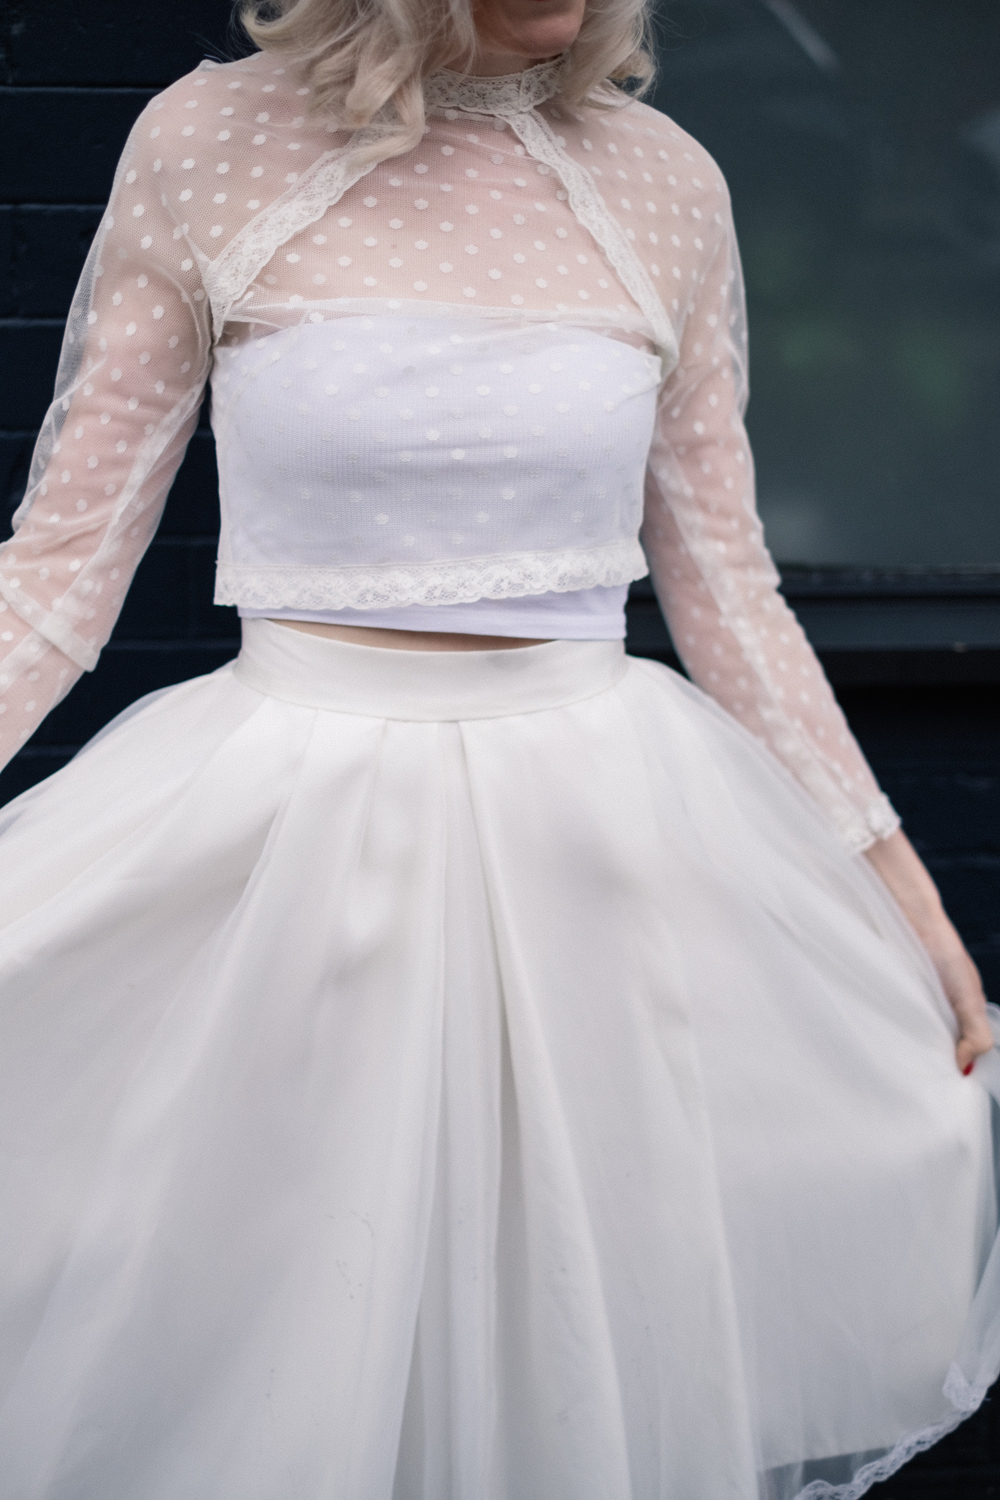 Close up of the wedding dress designed and hand made by Wilderness Bride